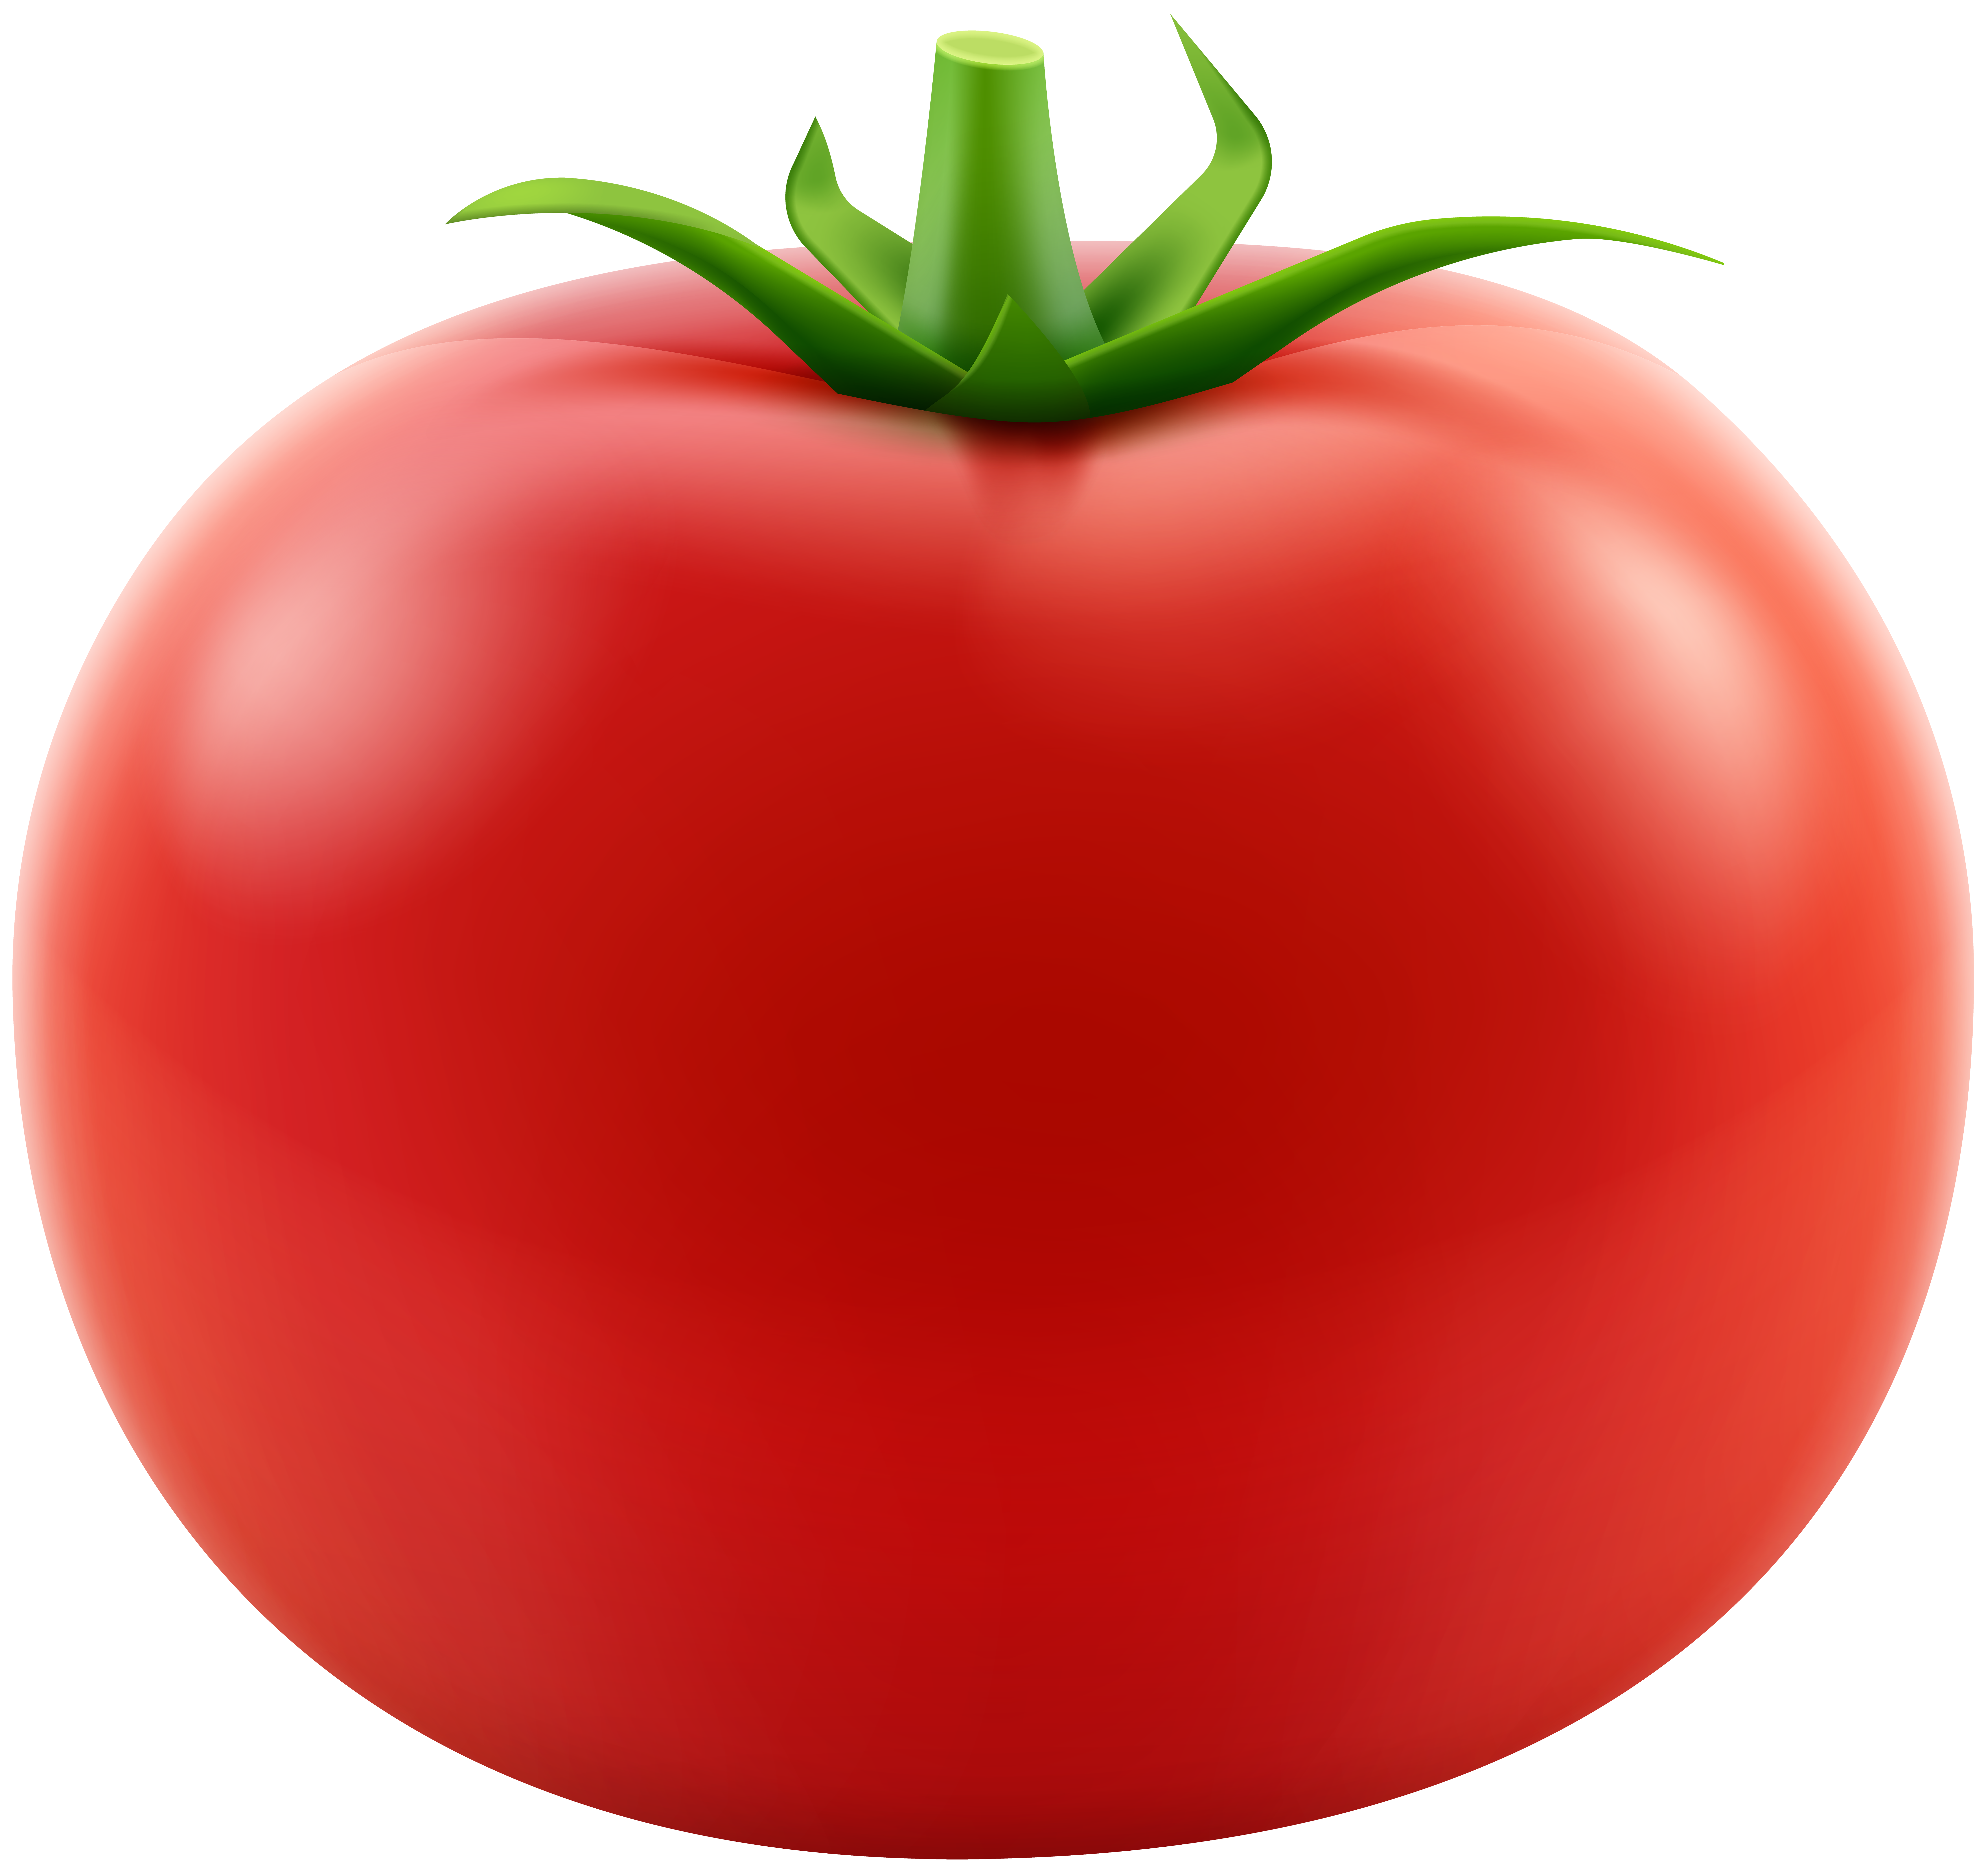 Hearts clipart vegetable. Red tomato transparent png